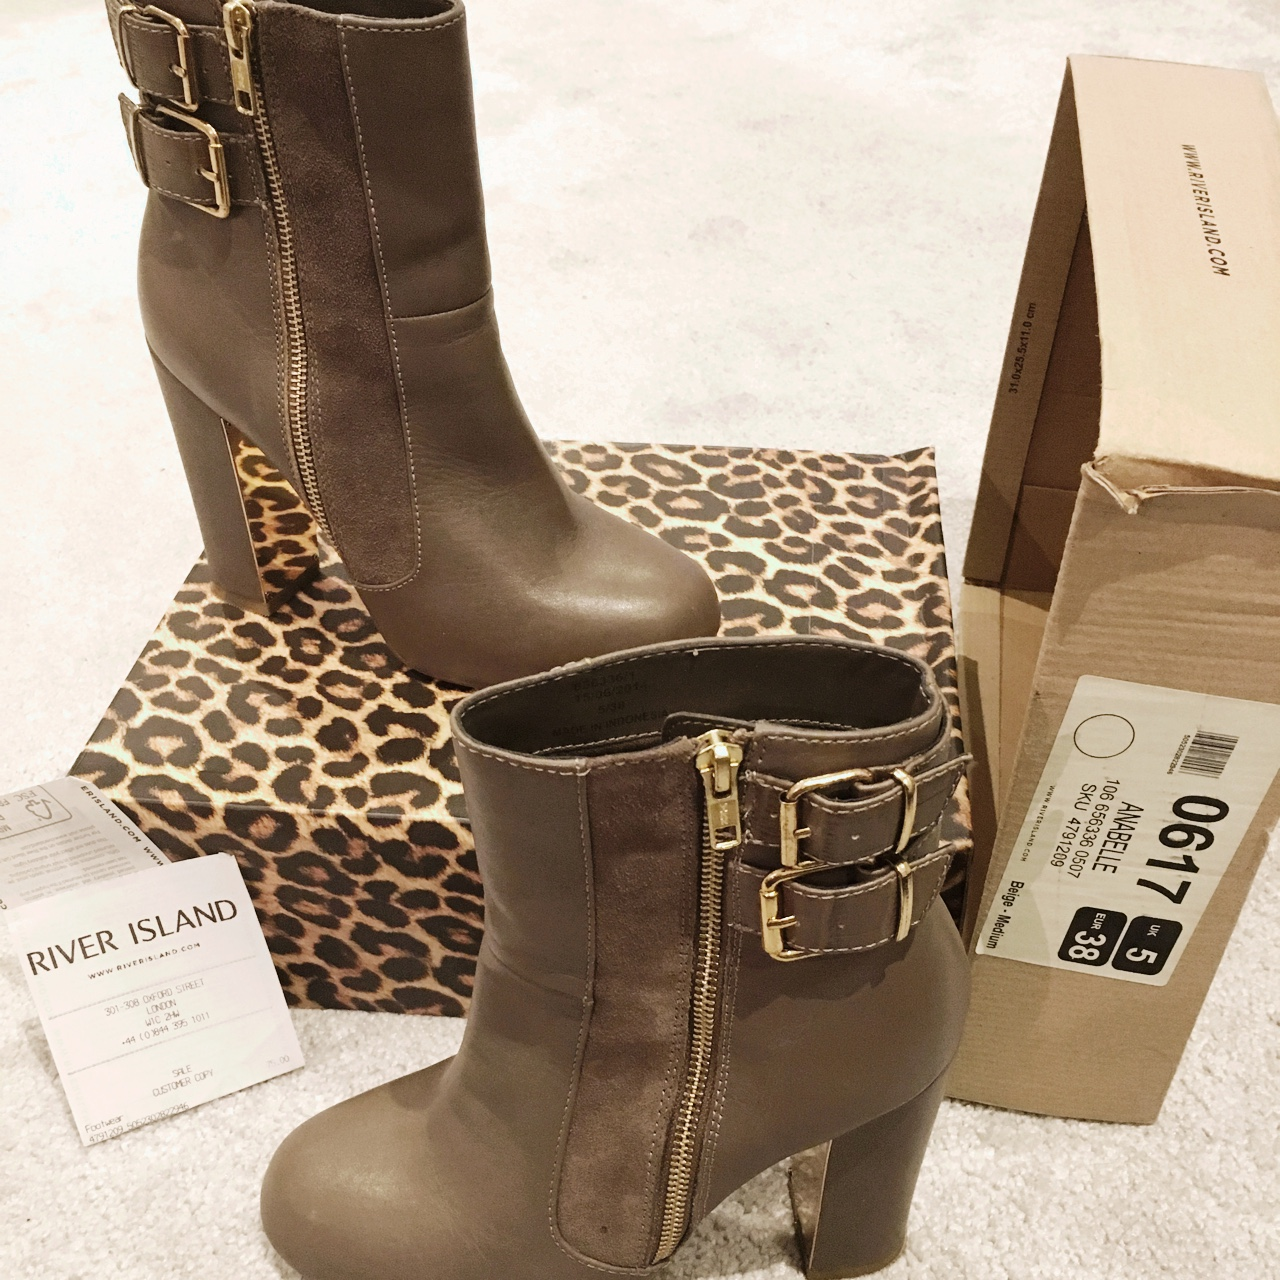 River Island Boots Size 5 Worn once